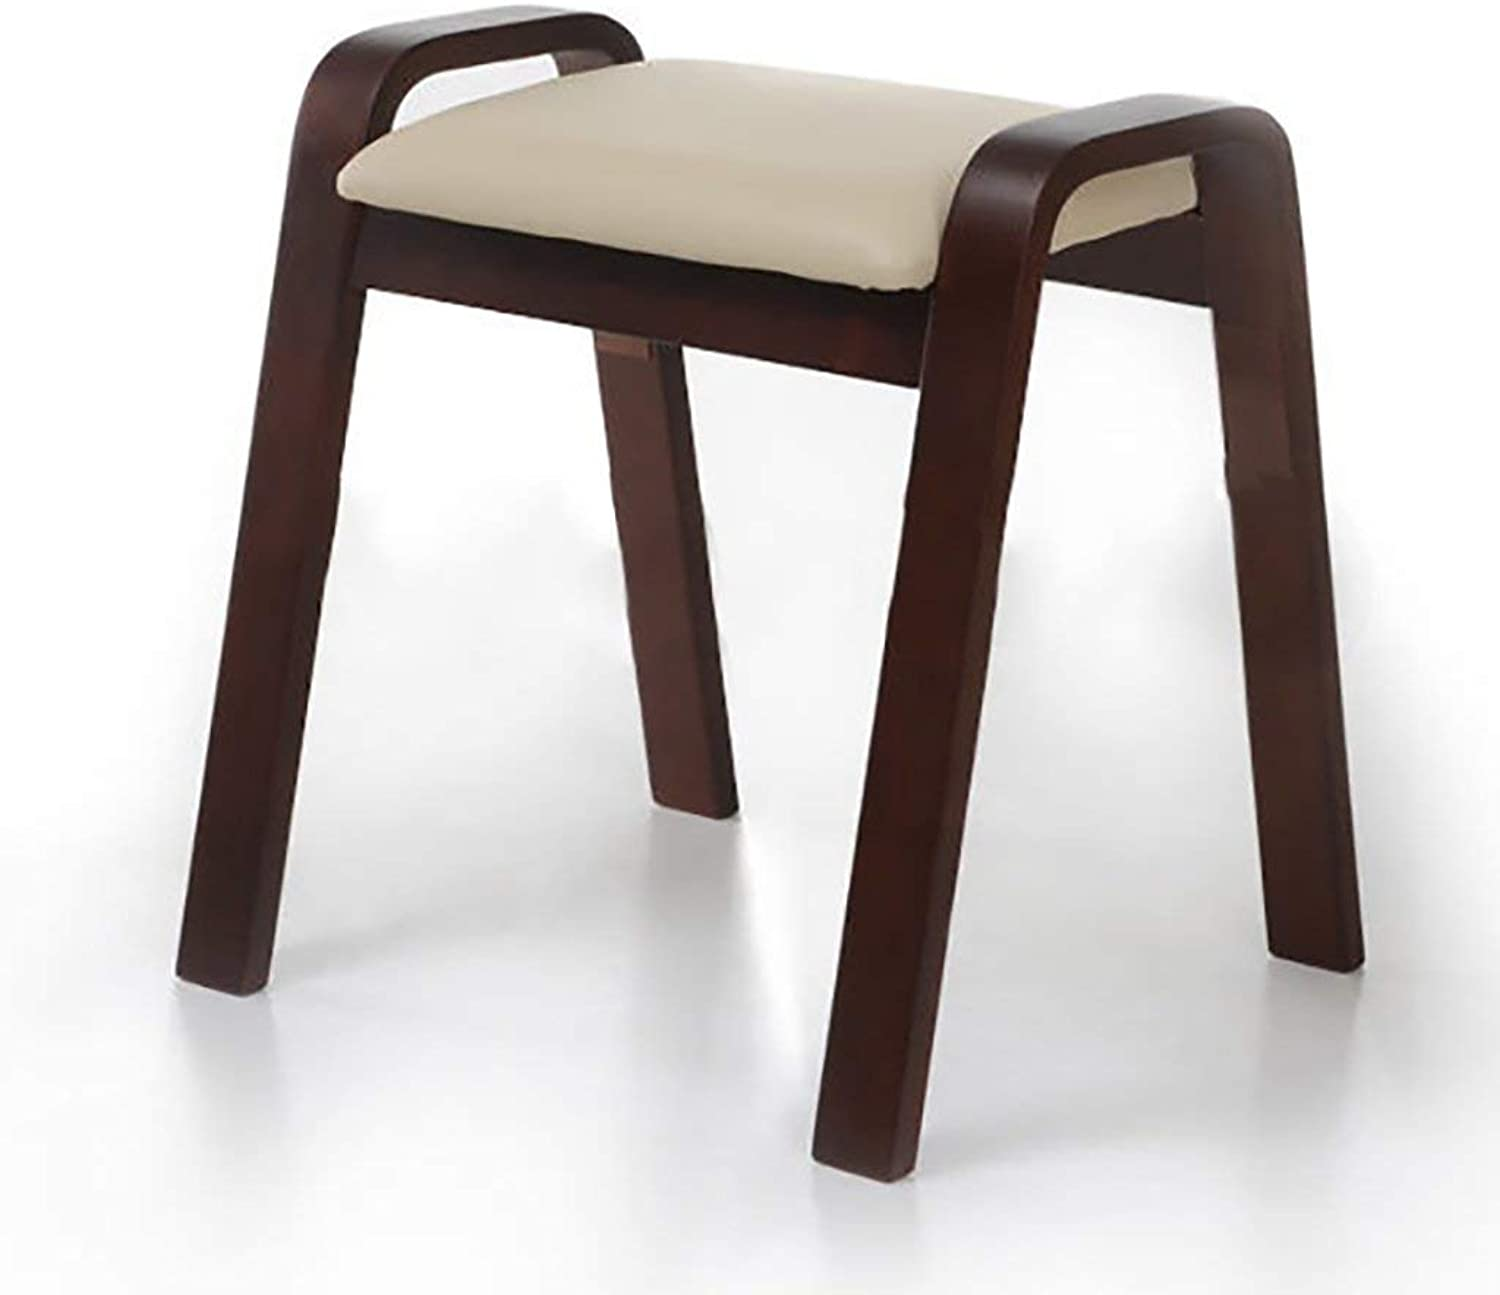 YUHUS HOME Stylish solid wood stool wooden curved wooden stool creative simple dining stool home bench sofa stool - small stool (color   A)